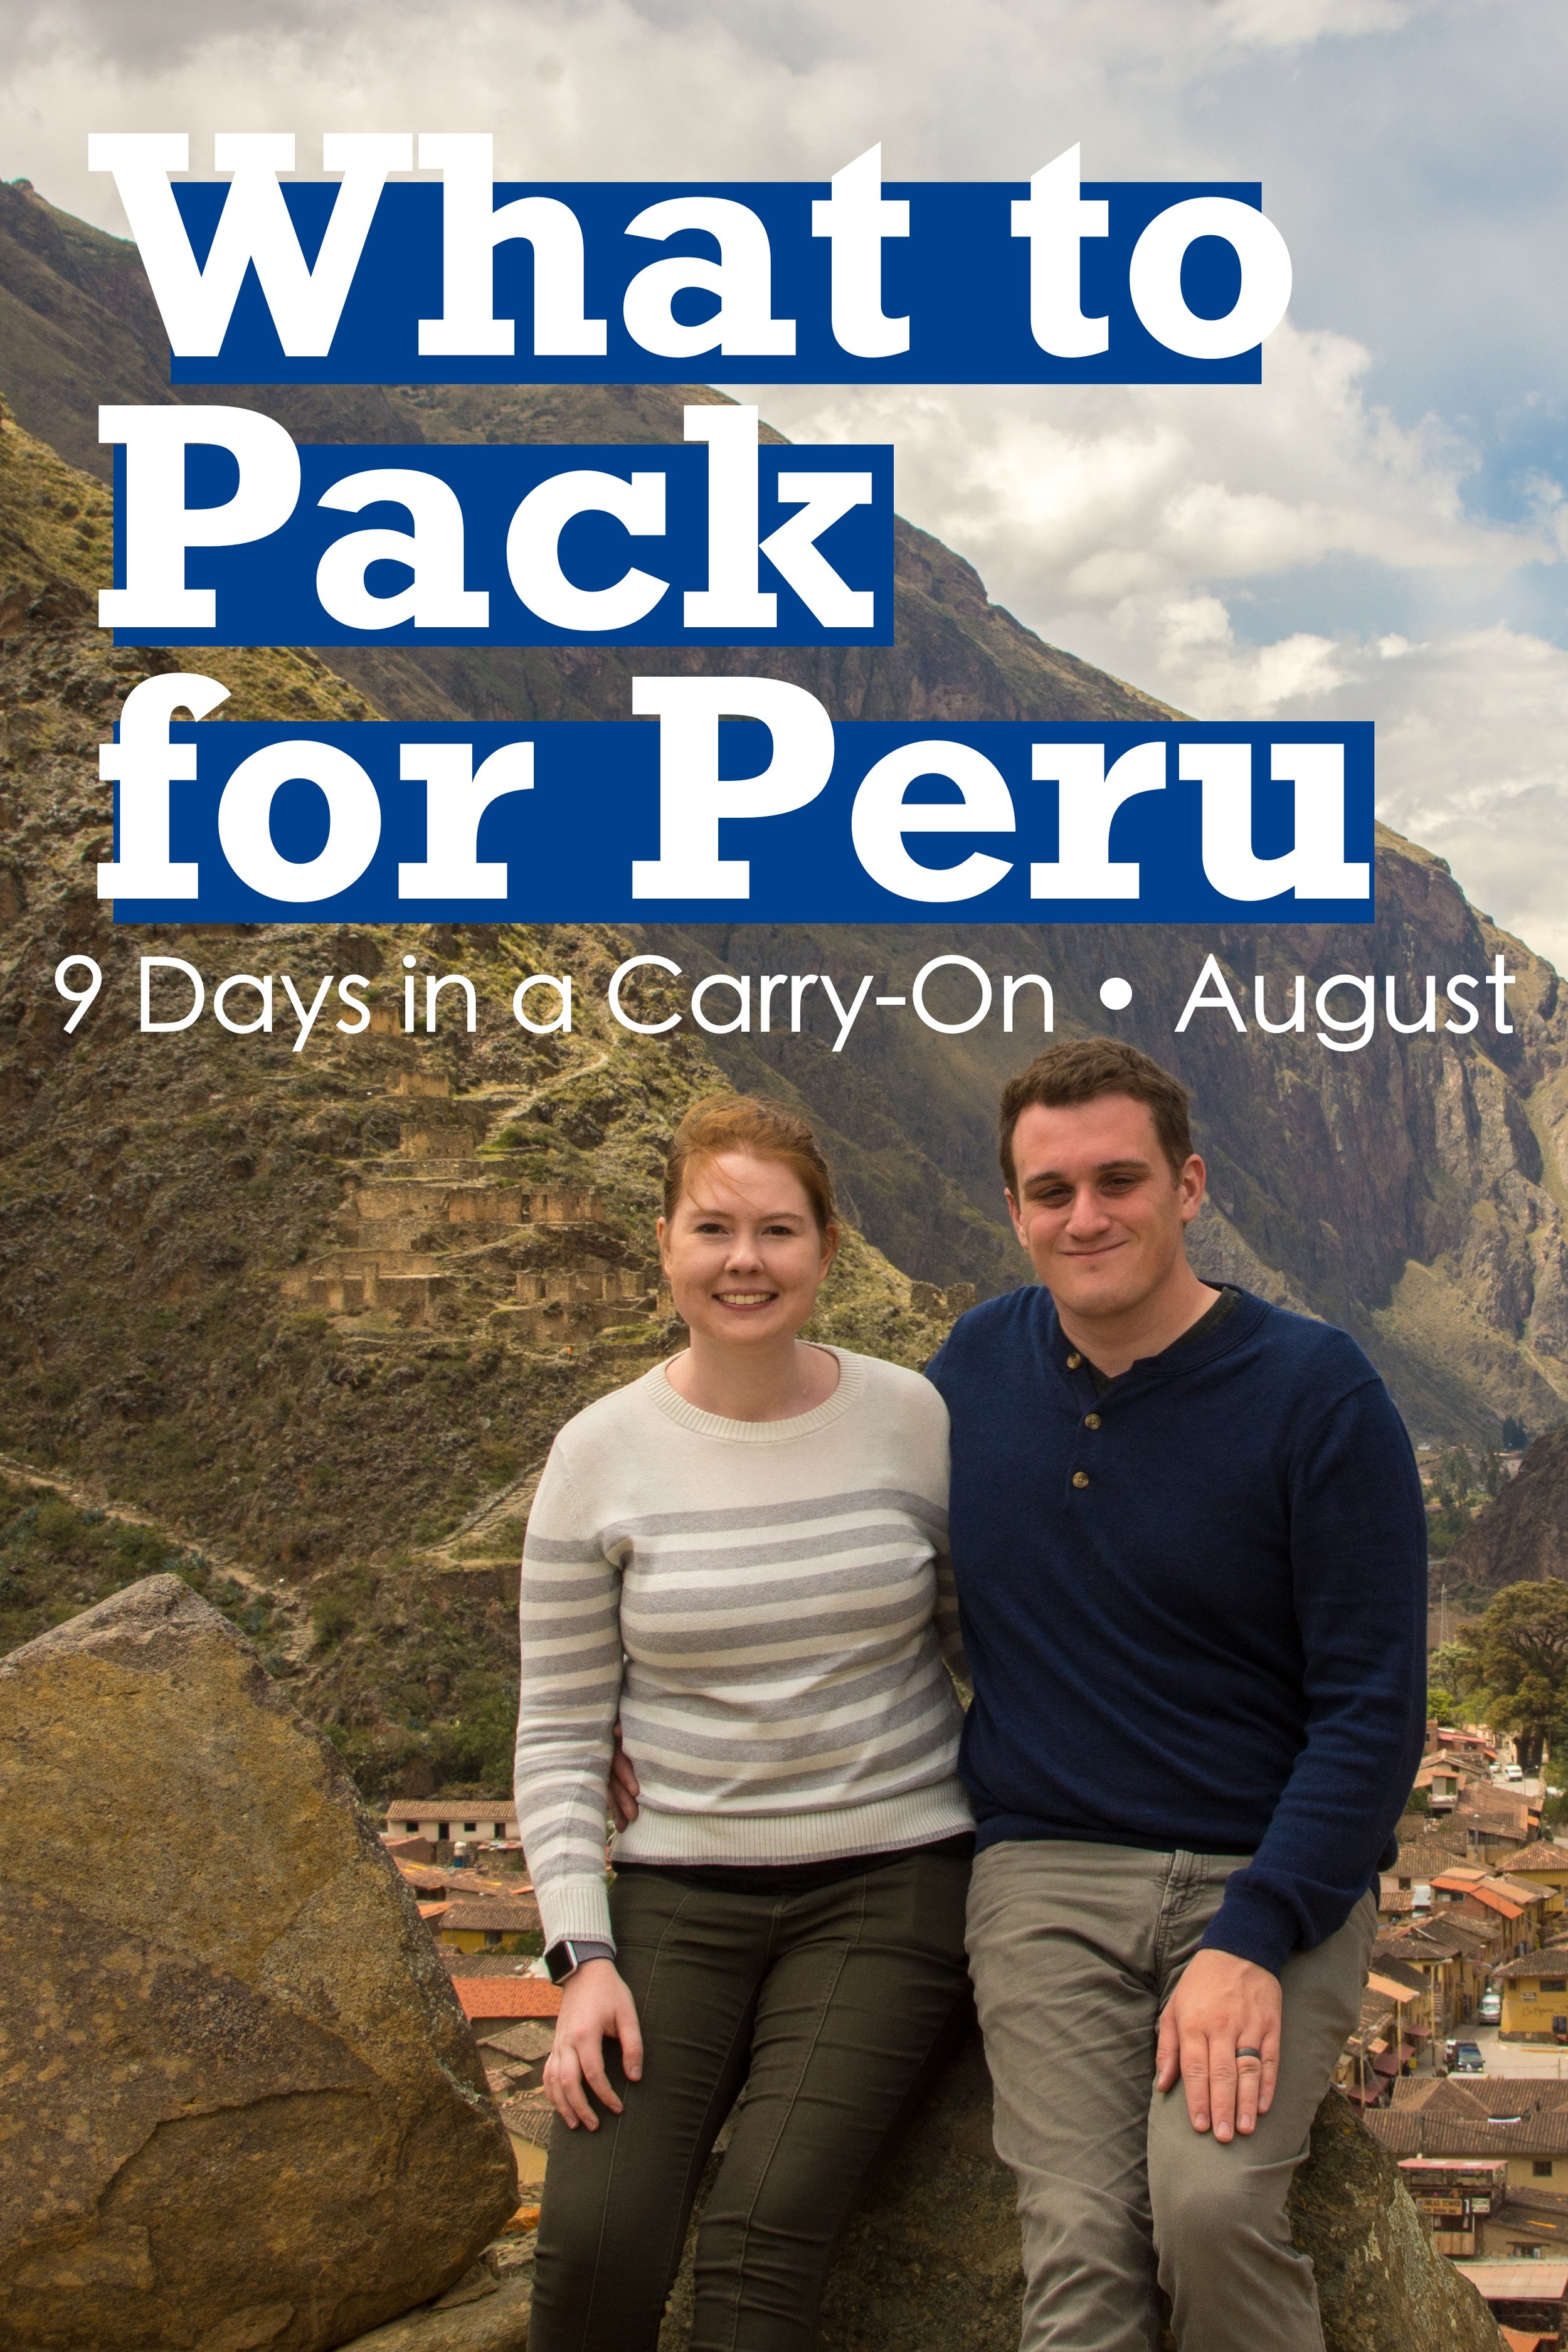 Figuring out what to pack for Peru can be challenging.  August in Peru is not only their winter but also their dry season.  Here is a packing list for Peru in August or September.  We fit 9 Days in Carry-On for our visit to Sacred Valley, Cusco, Lake Titicaca, and Lima. #Peru #Packing #PackingList #SouthAmerica #CarryOn